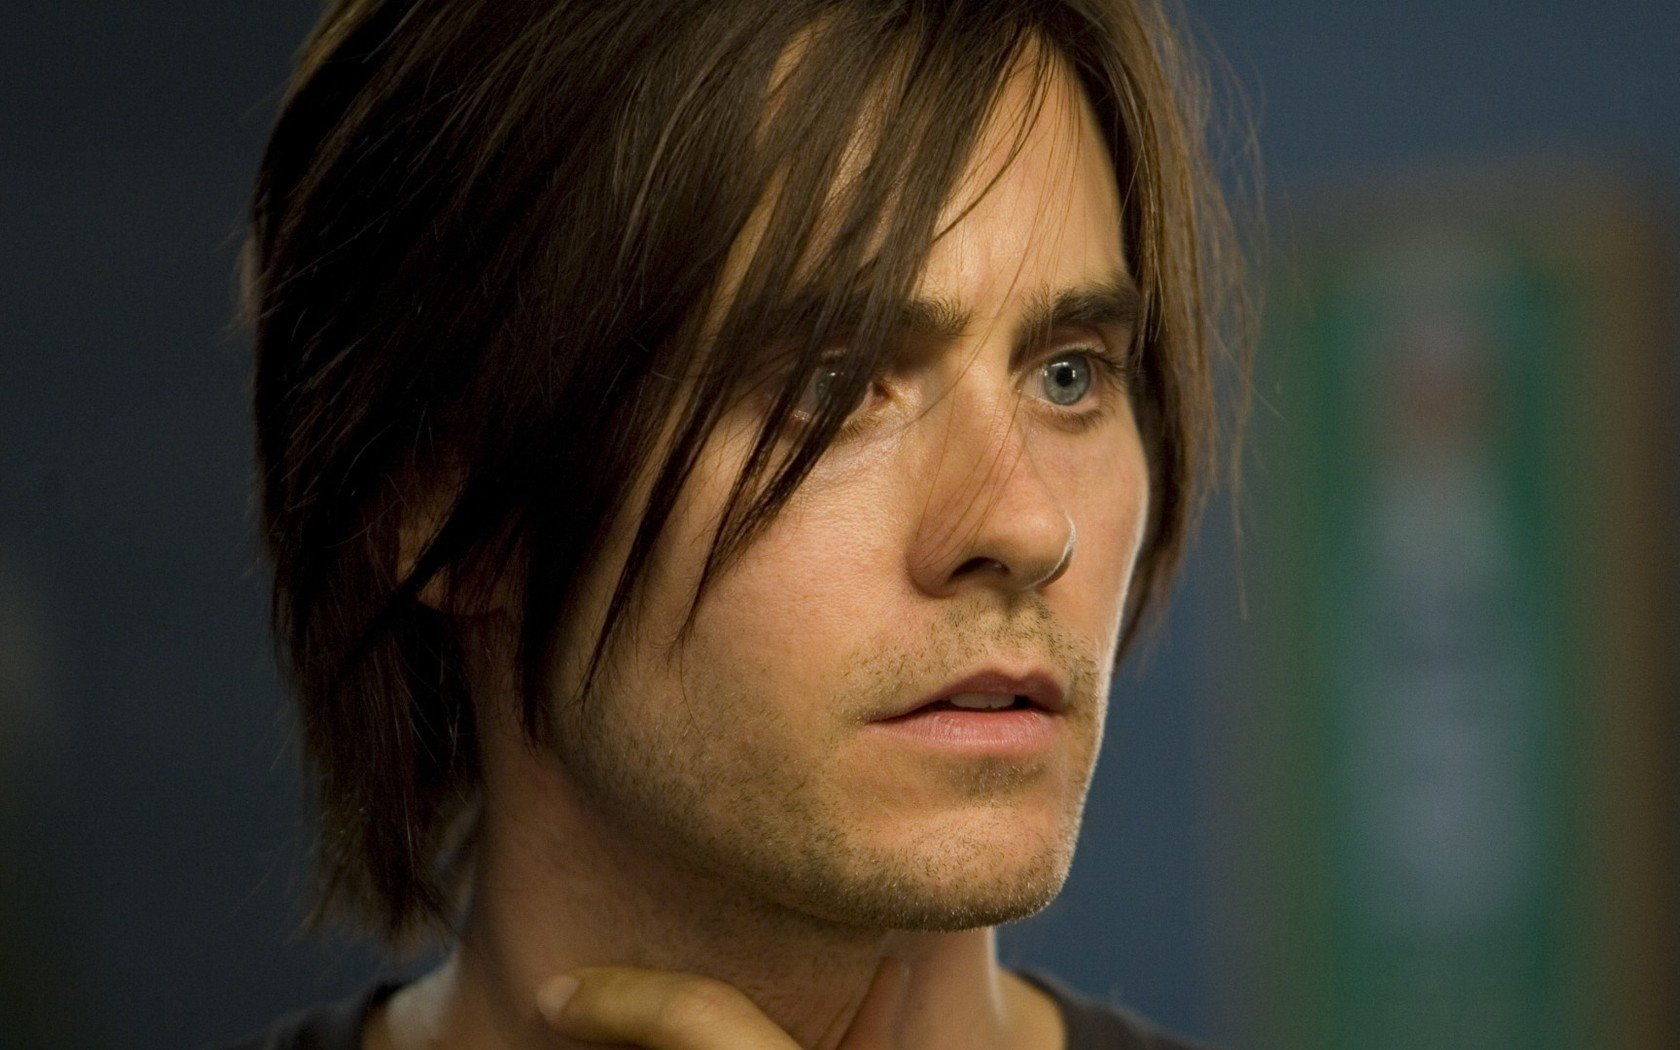 Awesome Jared Leto free background ID:365918 for hd 1680x1050 desktop